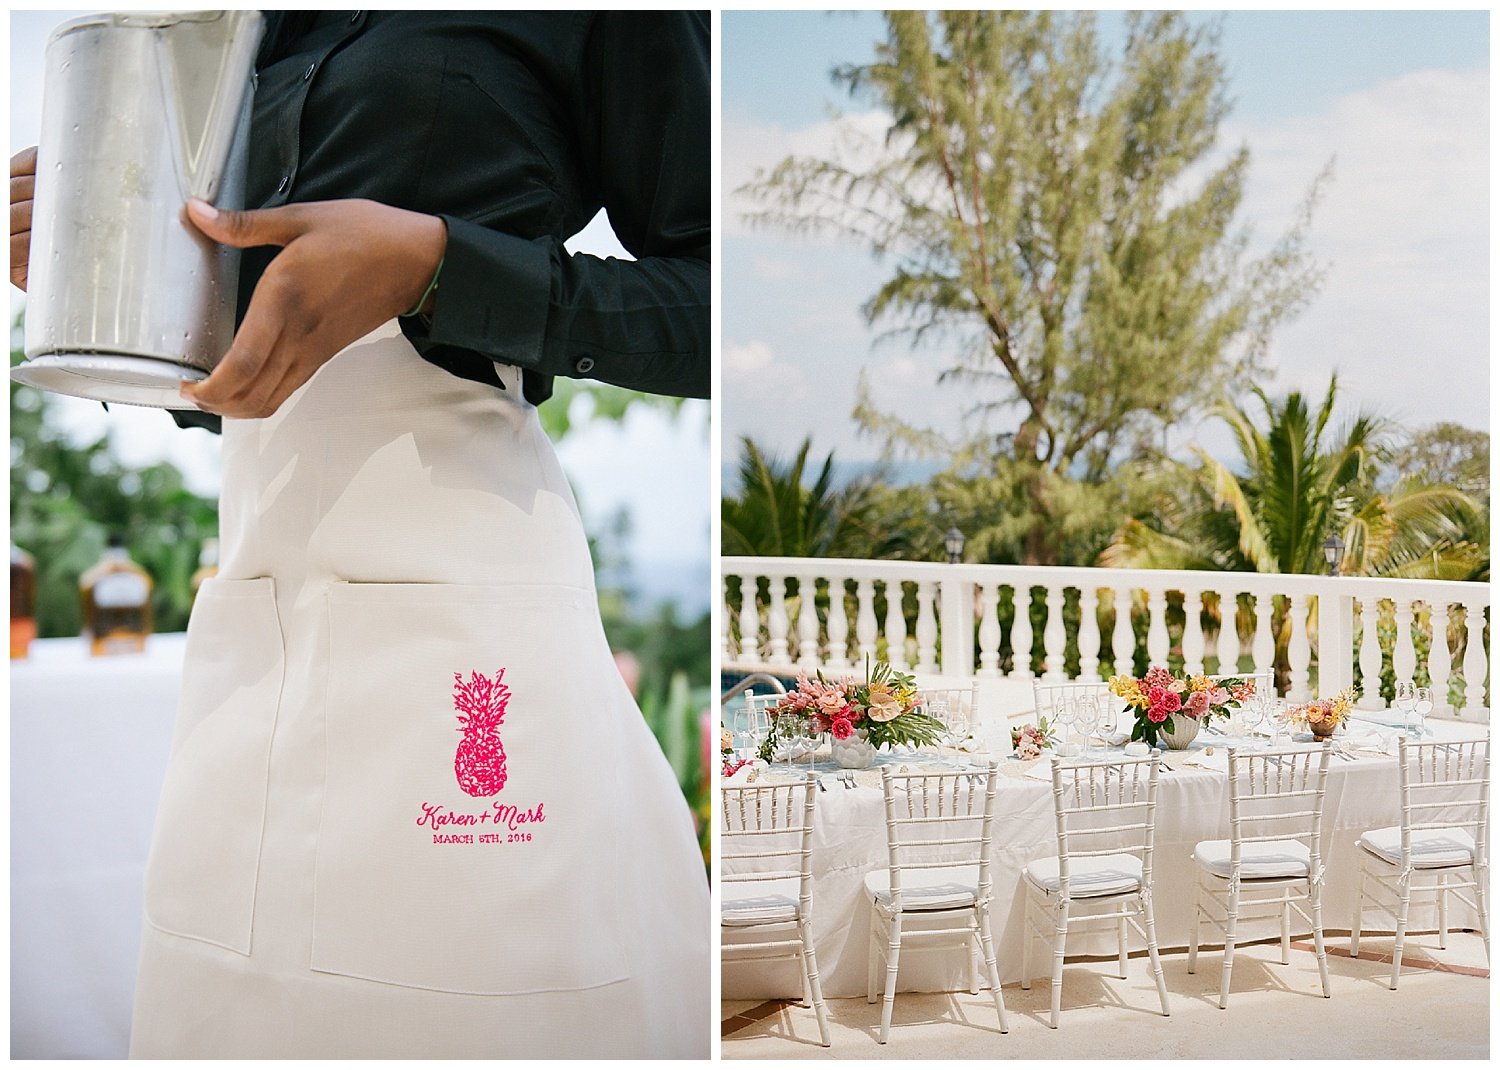 Personalized pineapple waitstaff aprons at Half Moon, Montego Bay wedding reception; Sylvie Gil Photography